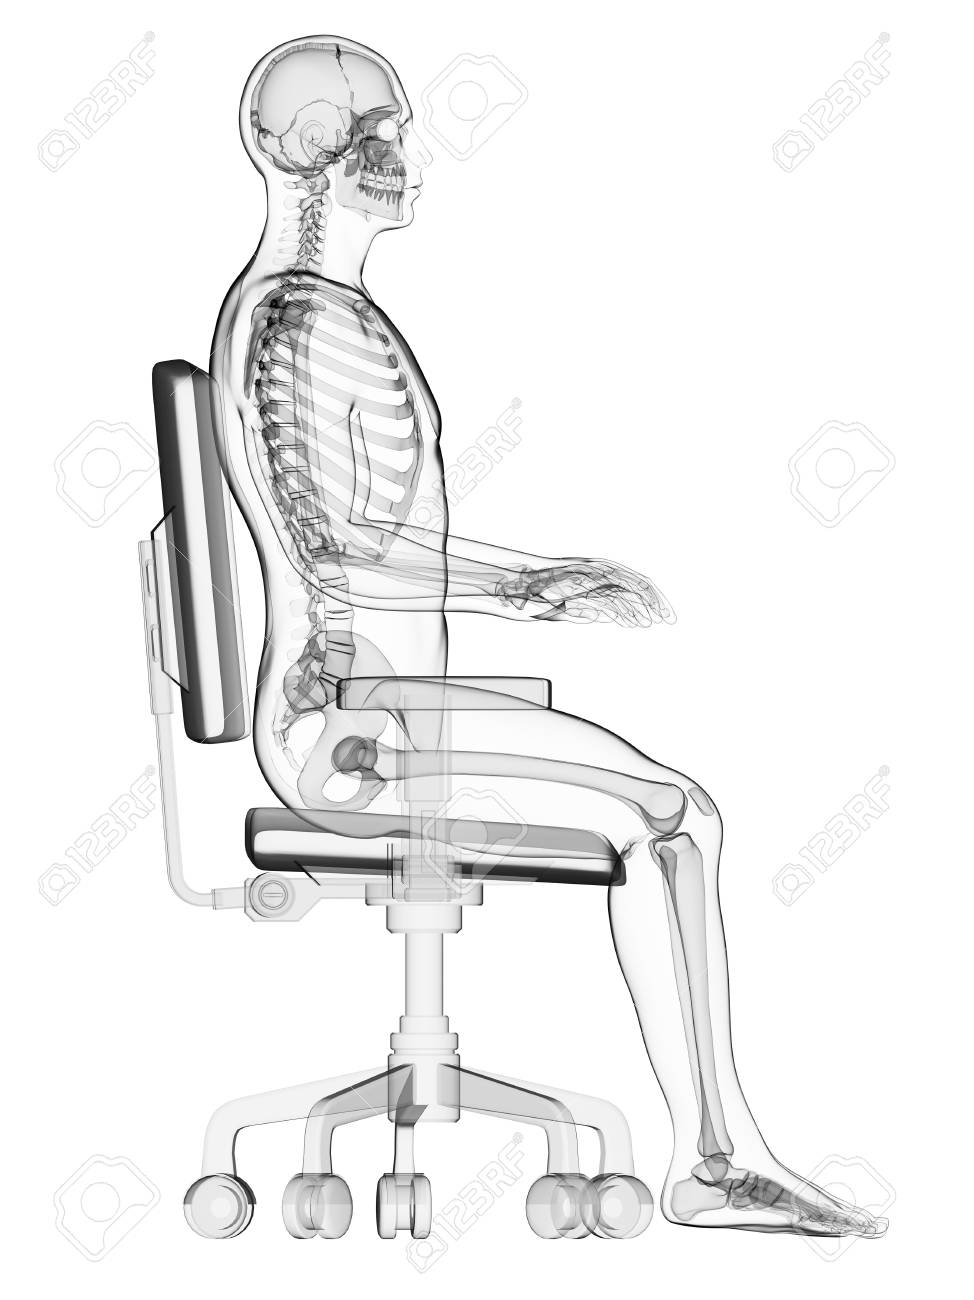 desk chair good posture swing south africa person sitting on an office with the correct computer artwork stock photo